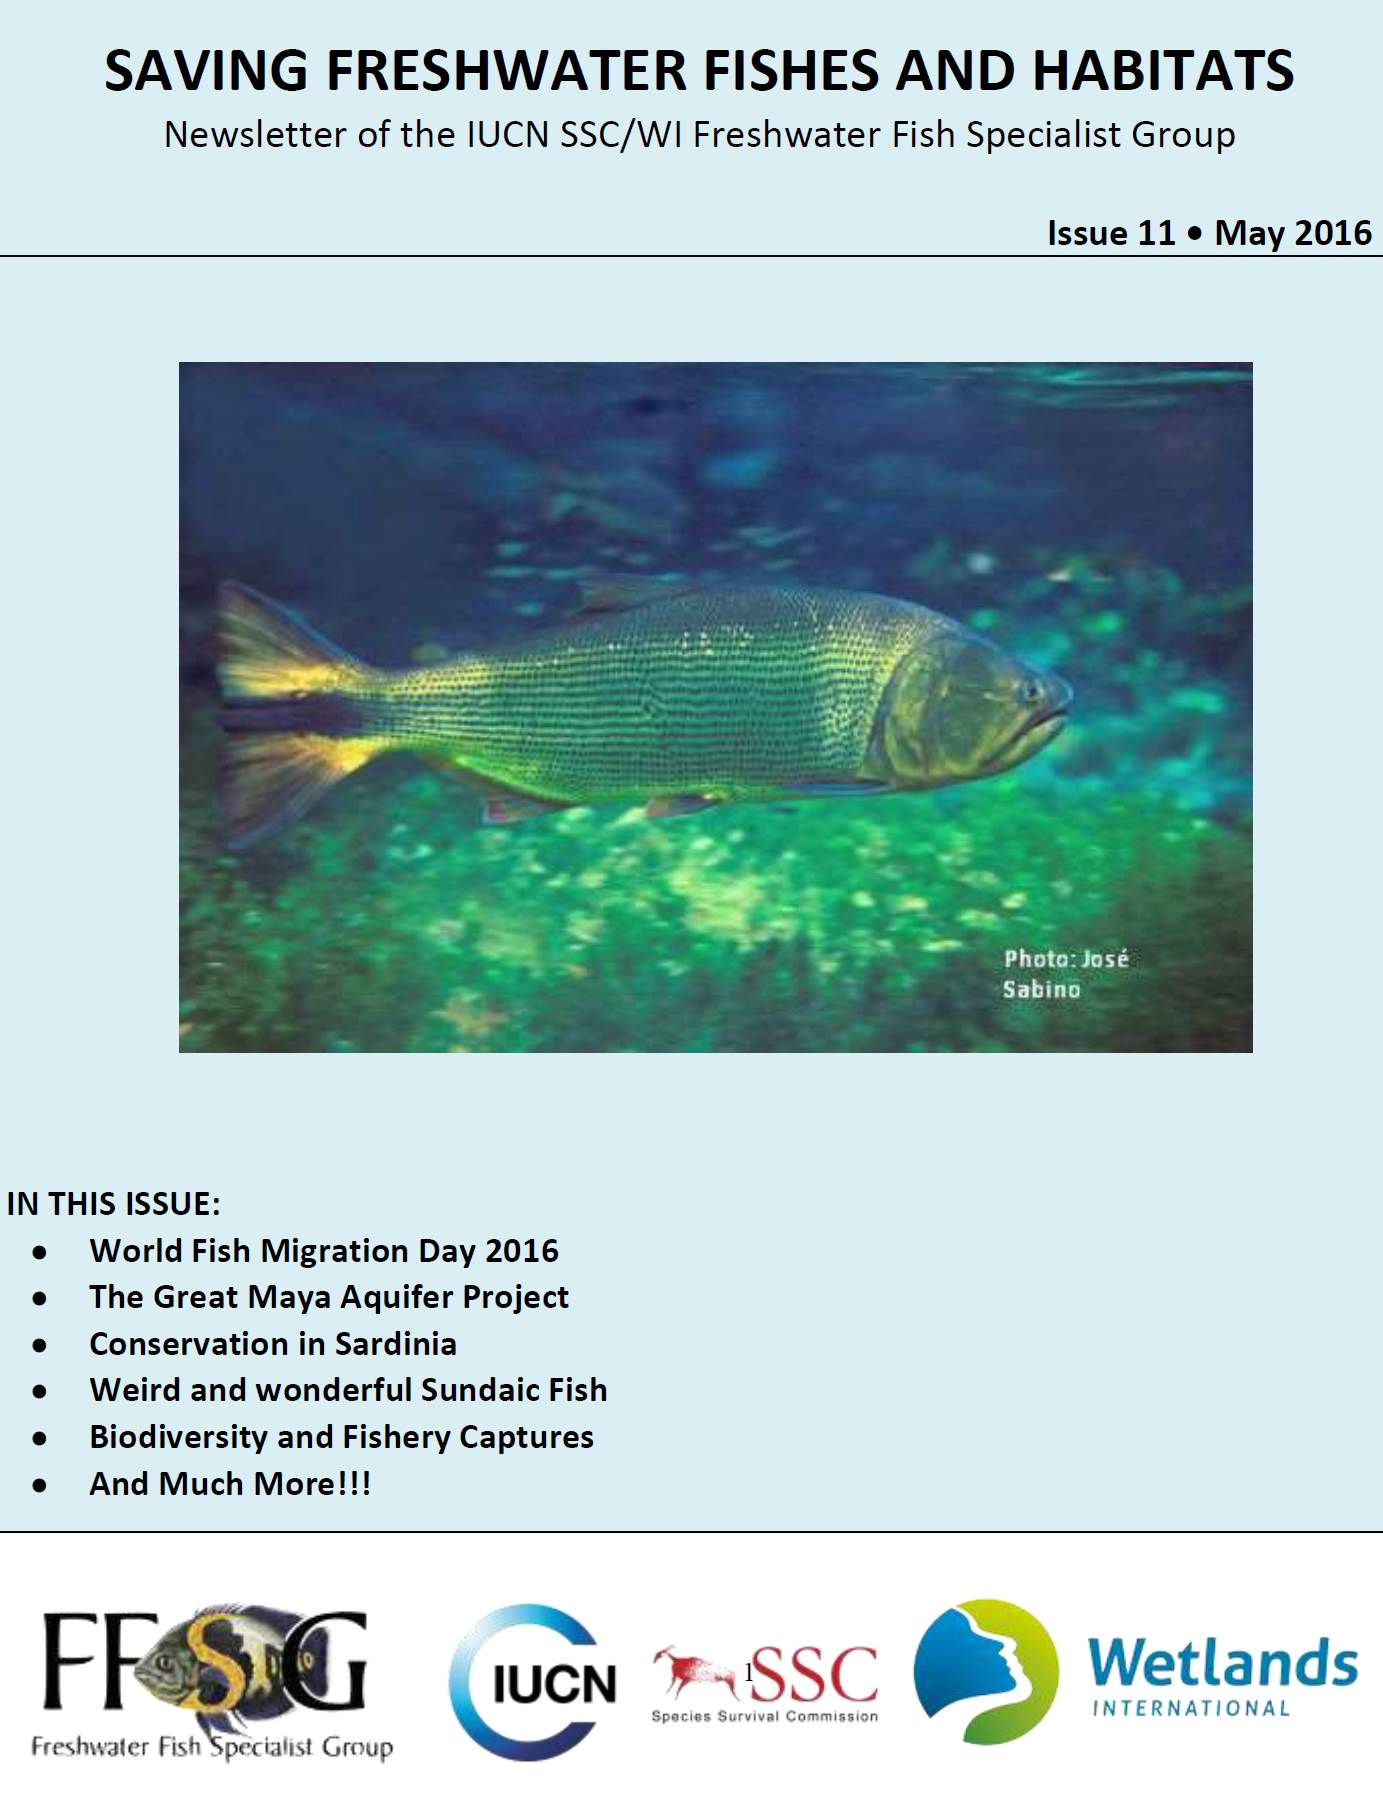 Freshwater fish conservation - Saving Freshwater Fishes And Habitats Issue 11 May 2016